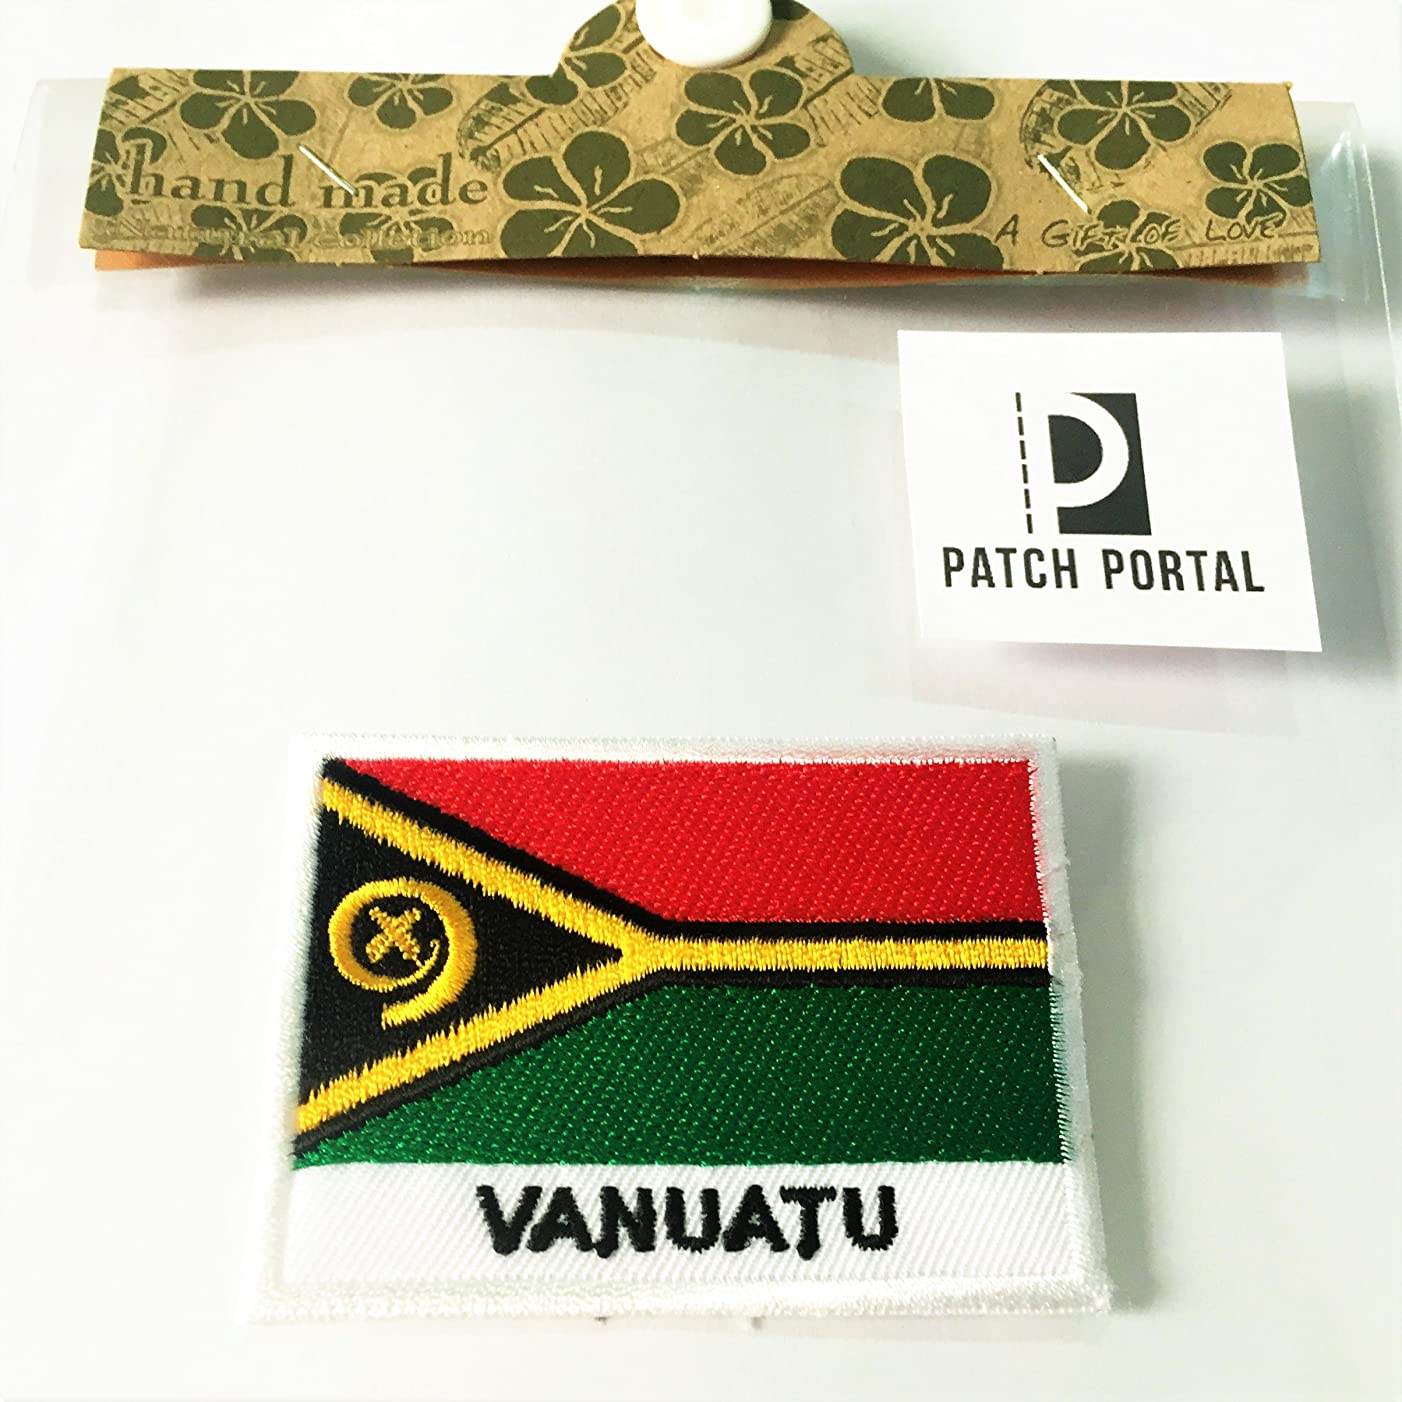 Patch Portal Vanuatu Flag 2x3 Inch Emblem Sew On Travel Patches Embroidered Country Badge Islands Aloha Crest Embroidery for Tshirt Jackets Bikers Men Women Backpacks Hats